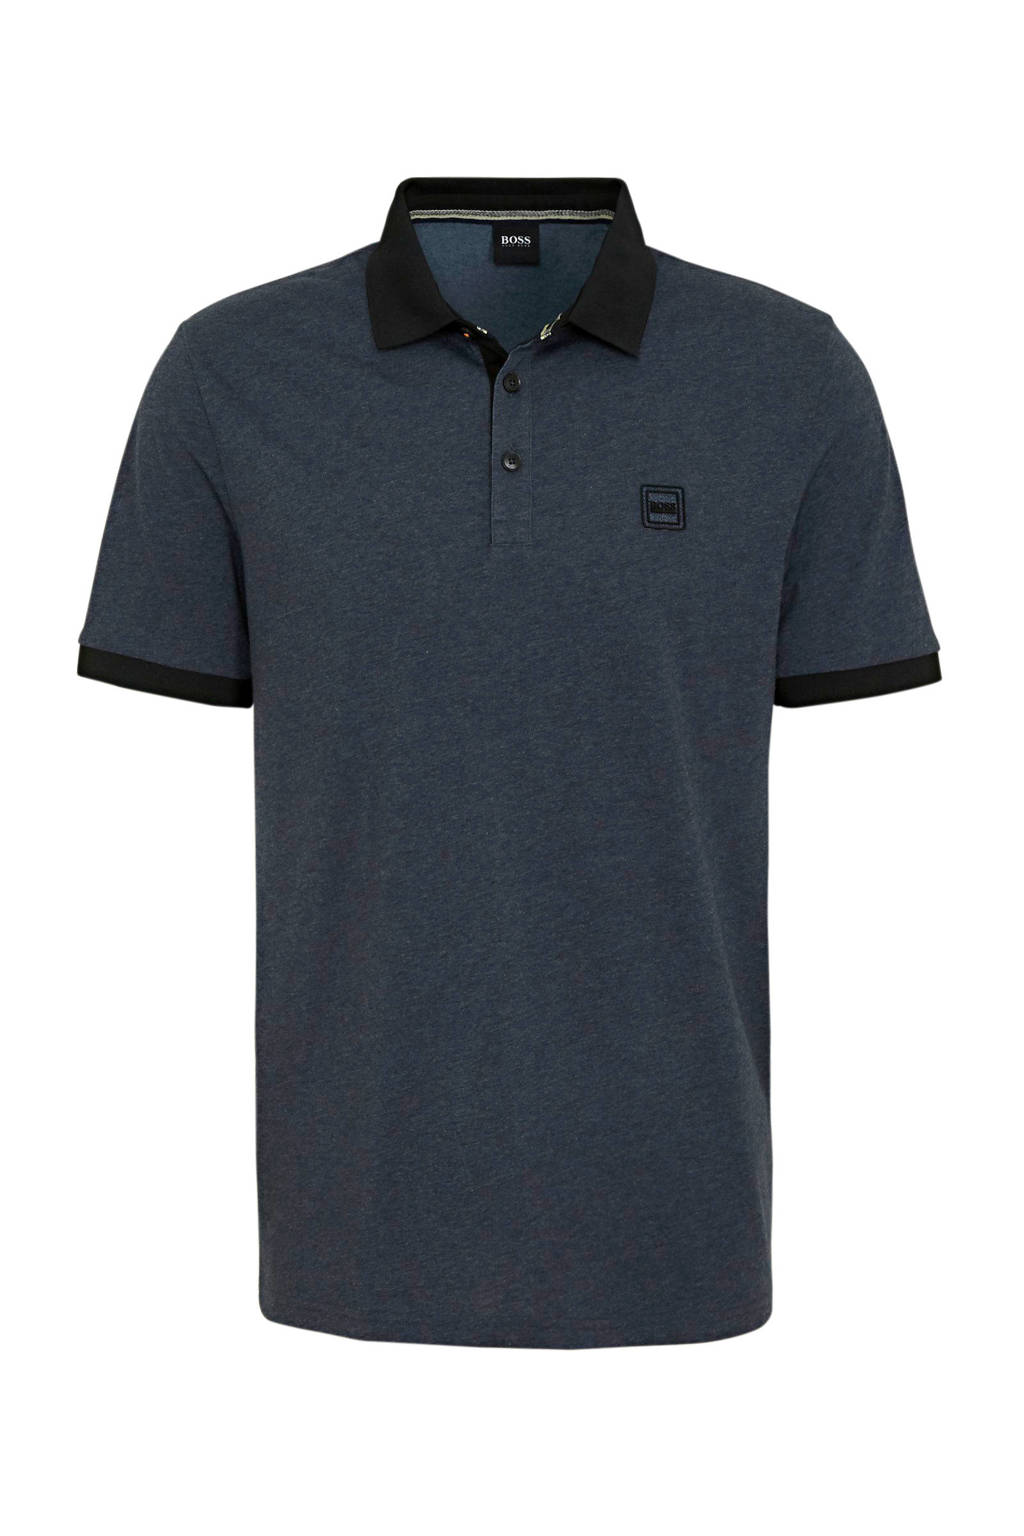 BOSS Casual gemêleerde regular fit polo donkerblauw, Donkerblauw